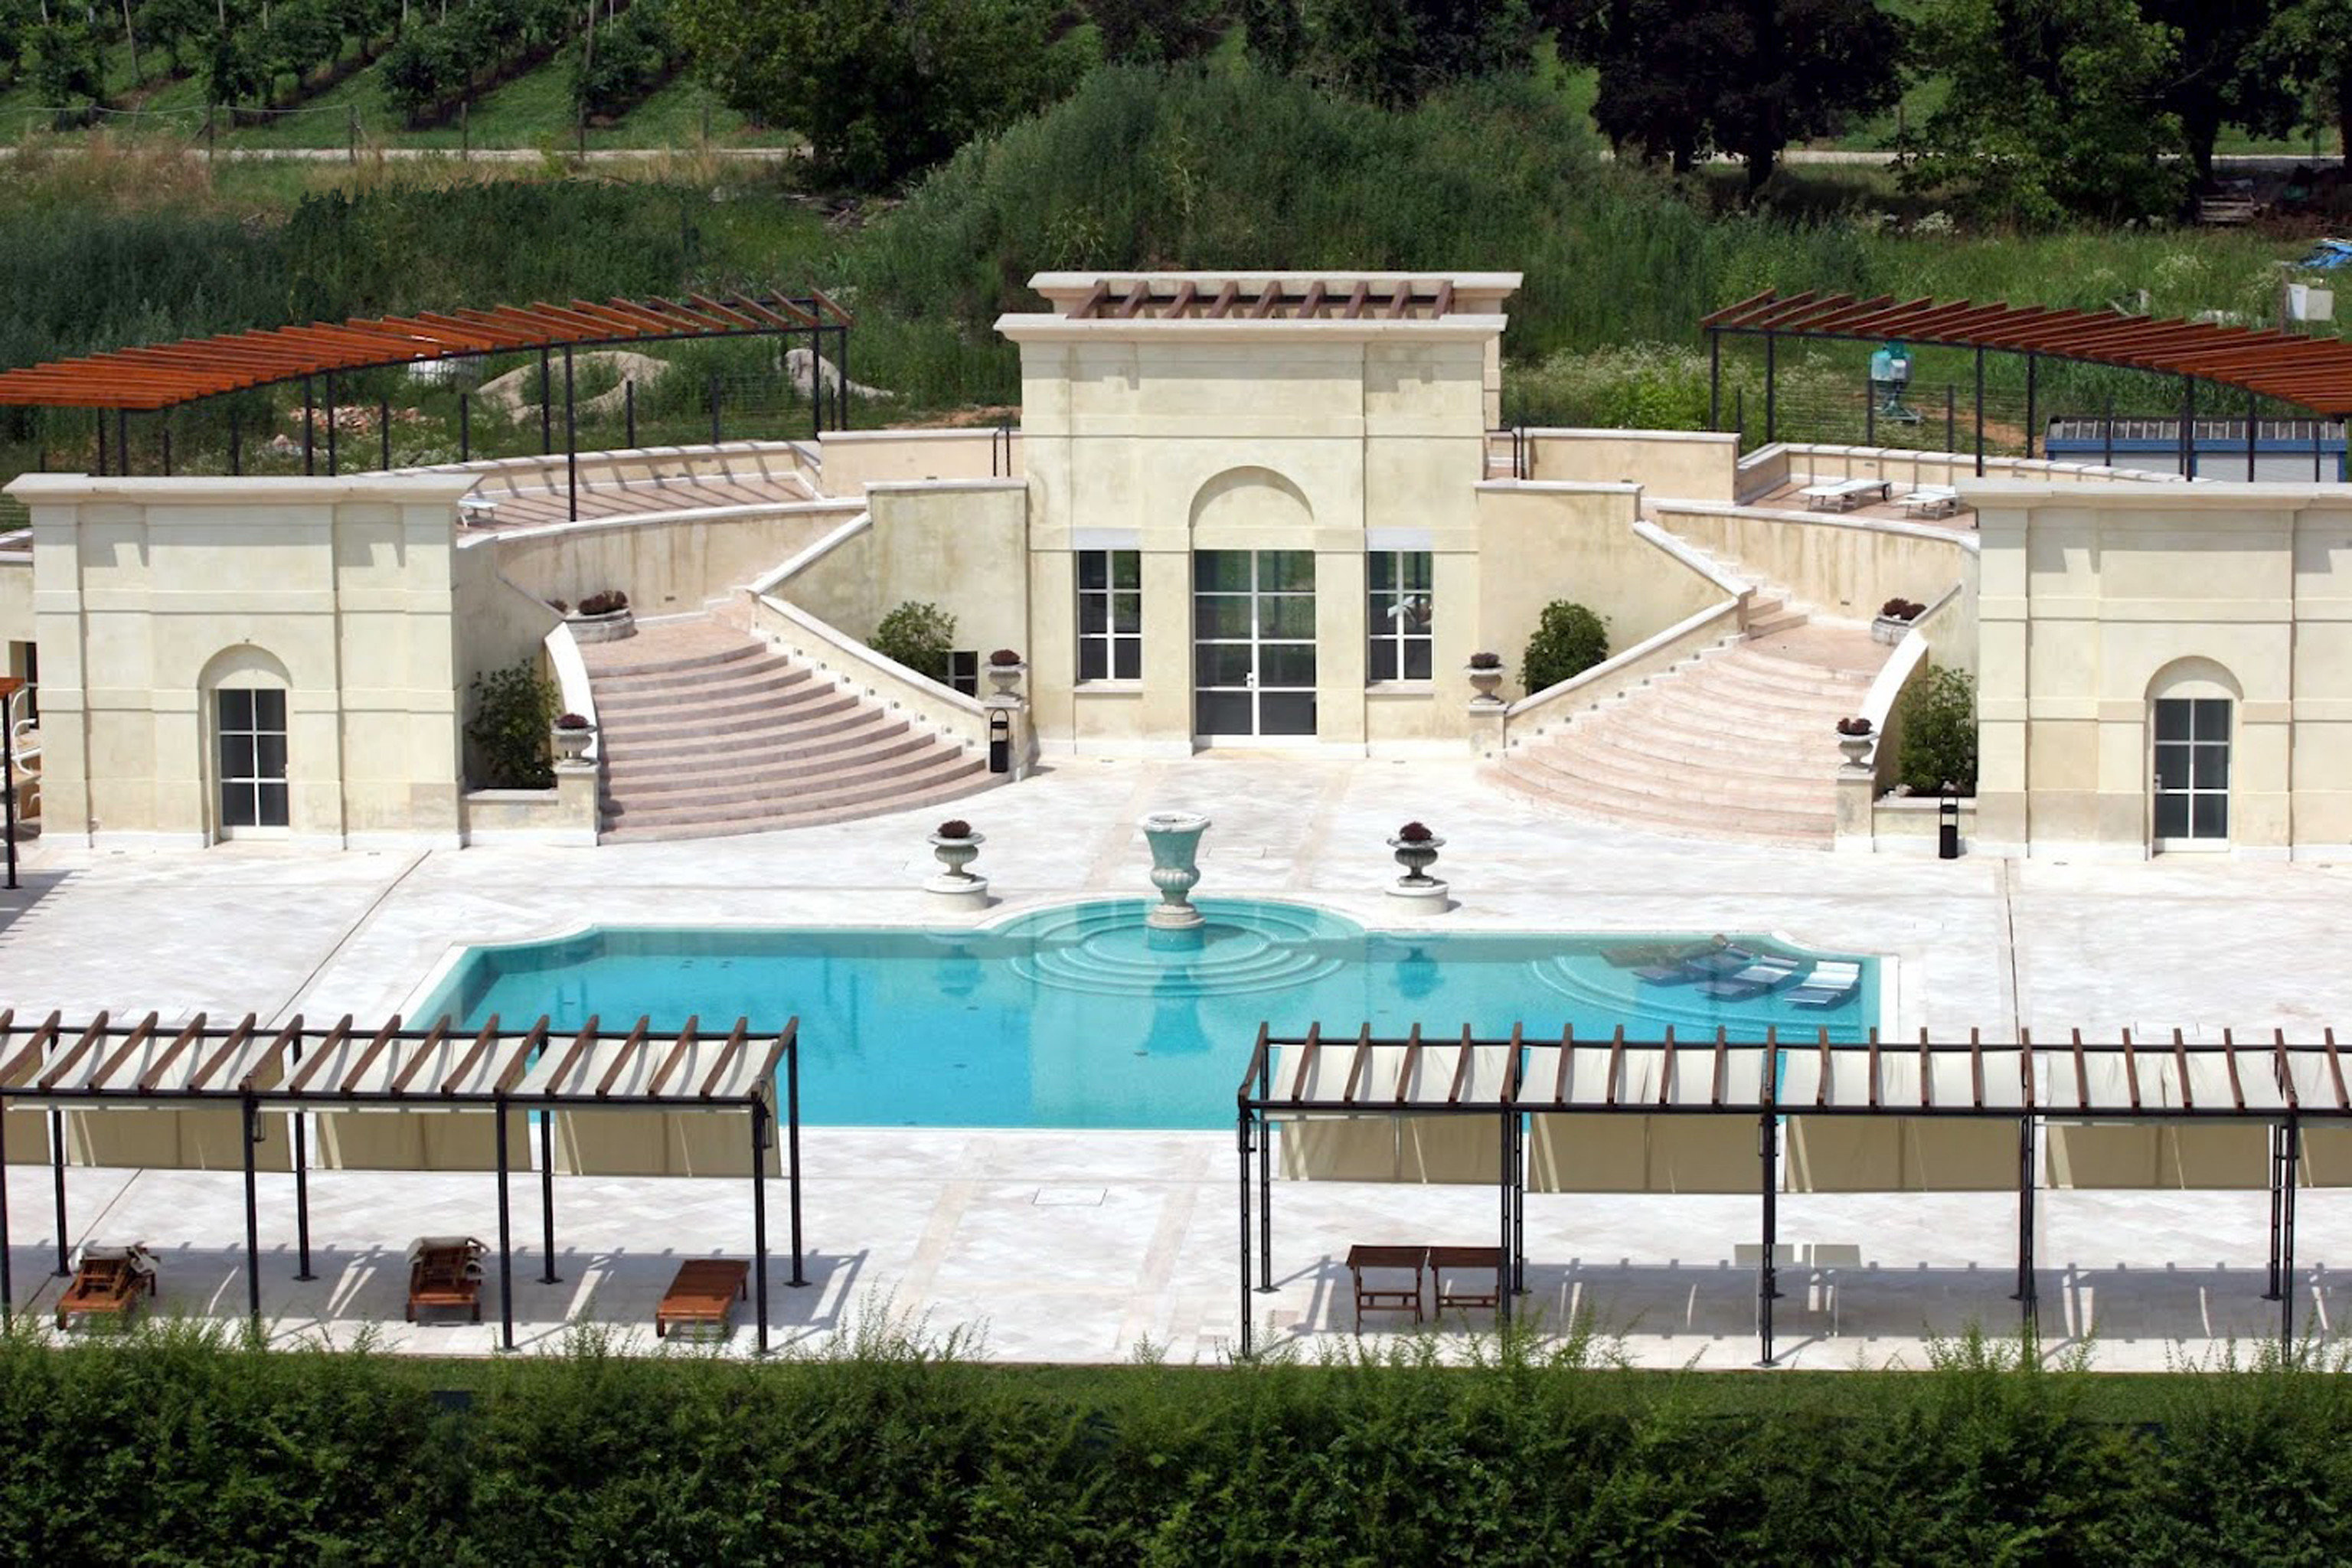 Country Elegant Grounds Historic Pool Villa building tree structure Architecture plaza sport venue palace arena stadium